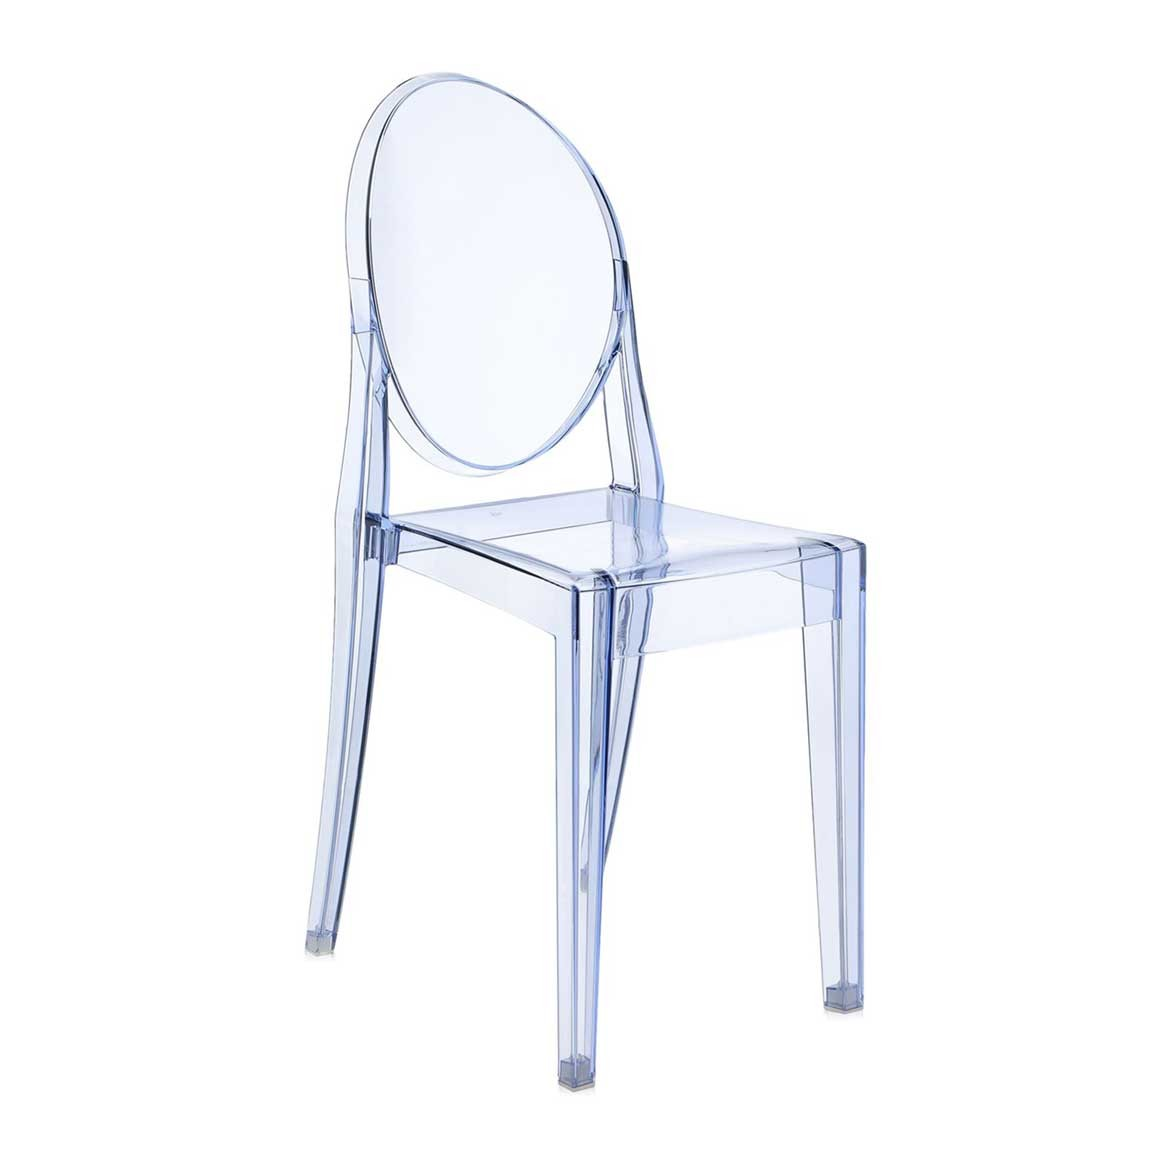 Victoria ghost xcelsior selection online store - Chaise victoria ghost starck ...